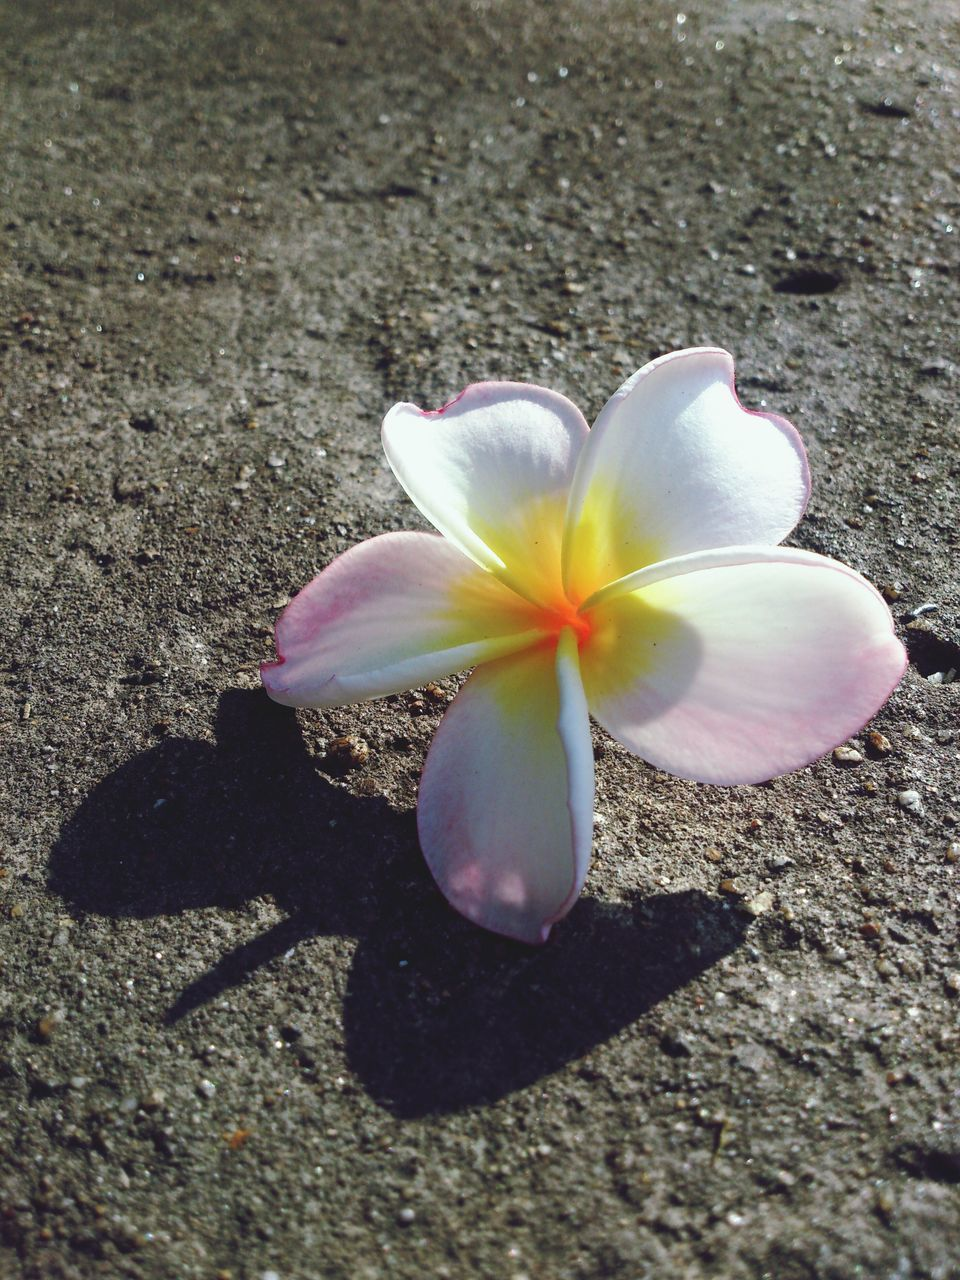 flowering plant, flower, petal, beauty in nature, freshness, inflorescence, flower head, plant, nature, frangipani, close-up, fragility, vulnerability, no people, sunlight, day, outdoors, high angle view, growth